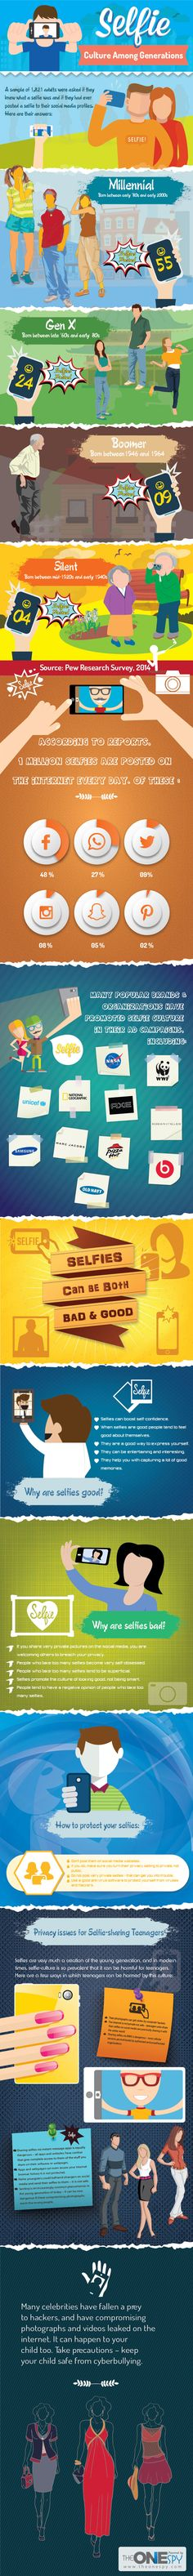 Selfie Culture Among Generation #infographic #Selfie #Internet #SocialMedia